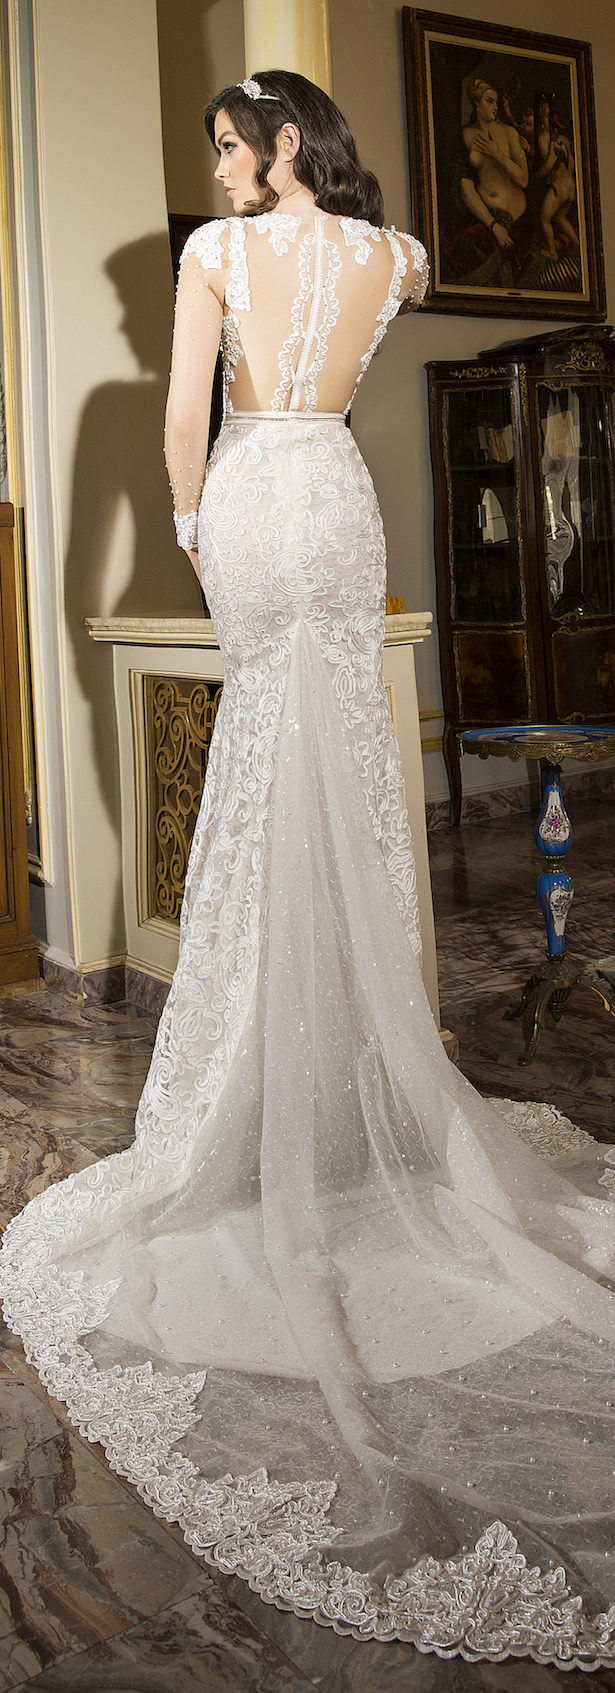 Shabi Israel Haute Couture Bridal Collection Belle The